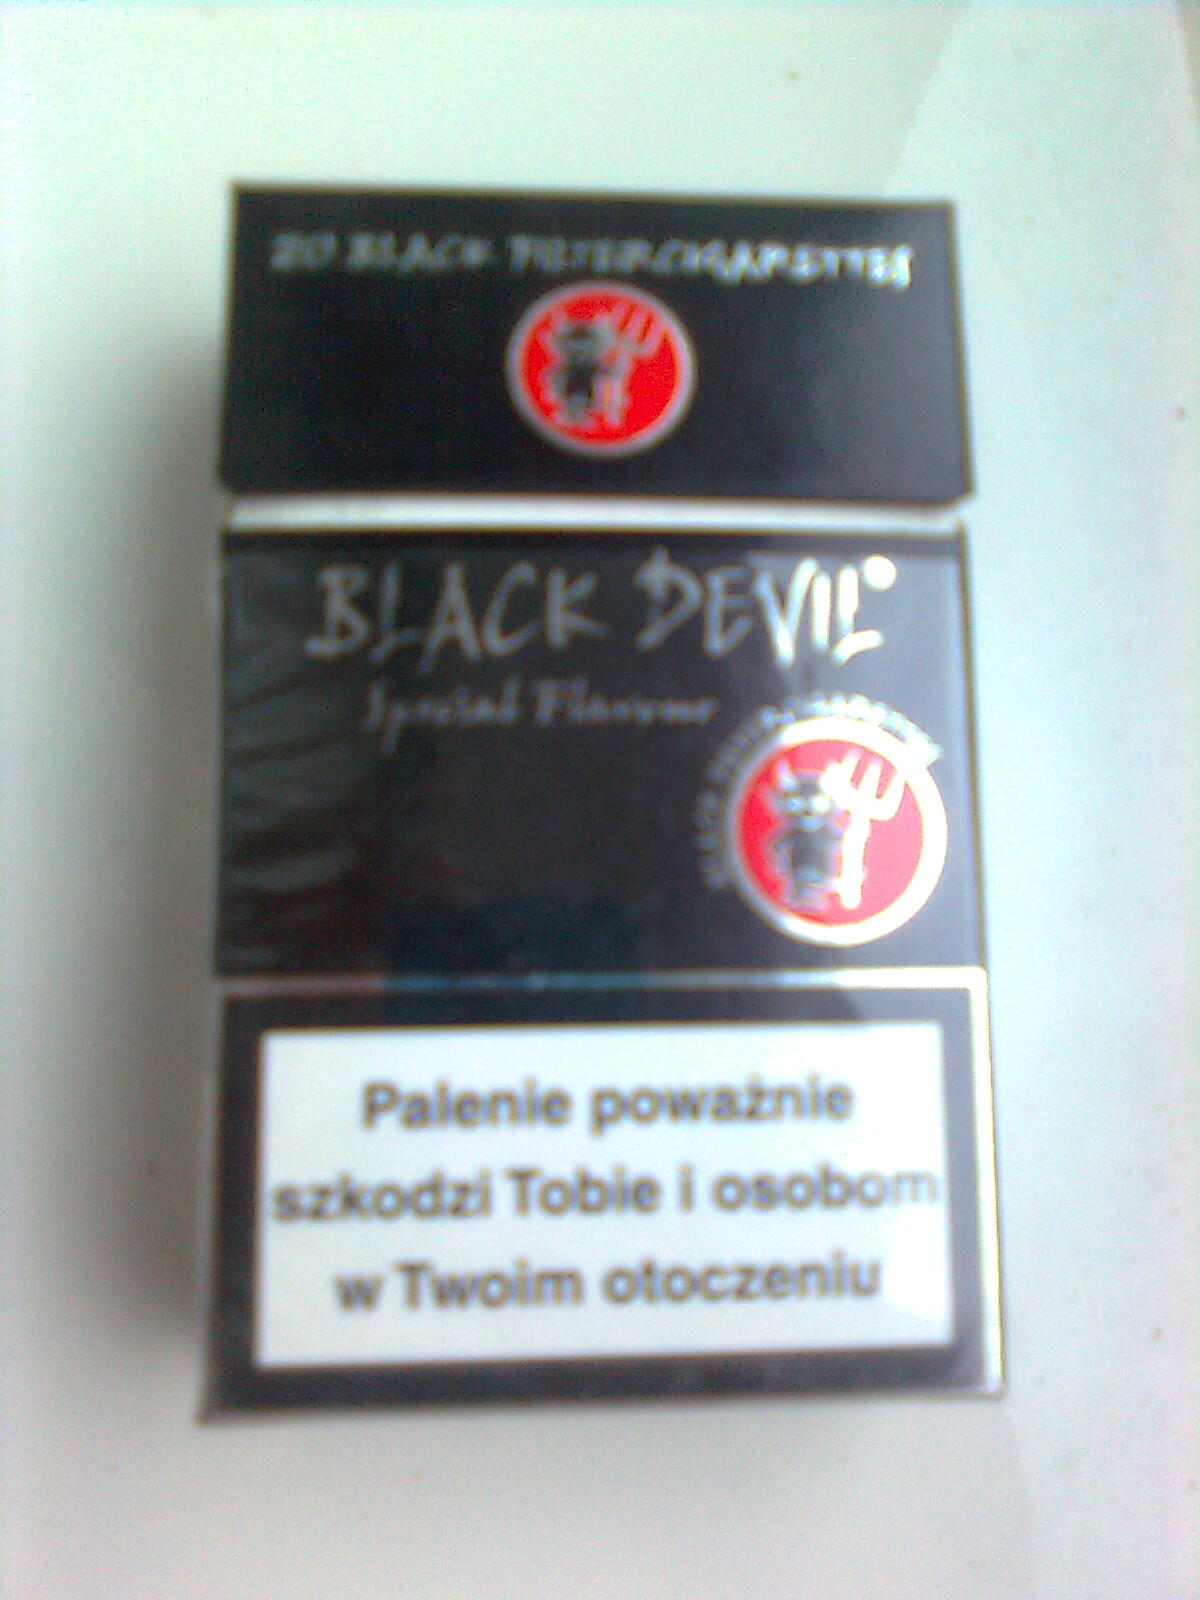 File:Black Devil - Special Flavour.jpg - Wikimedia Commons